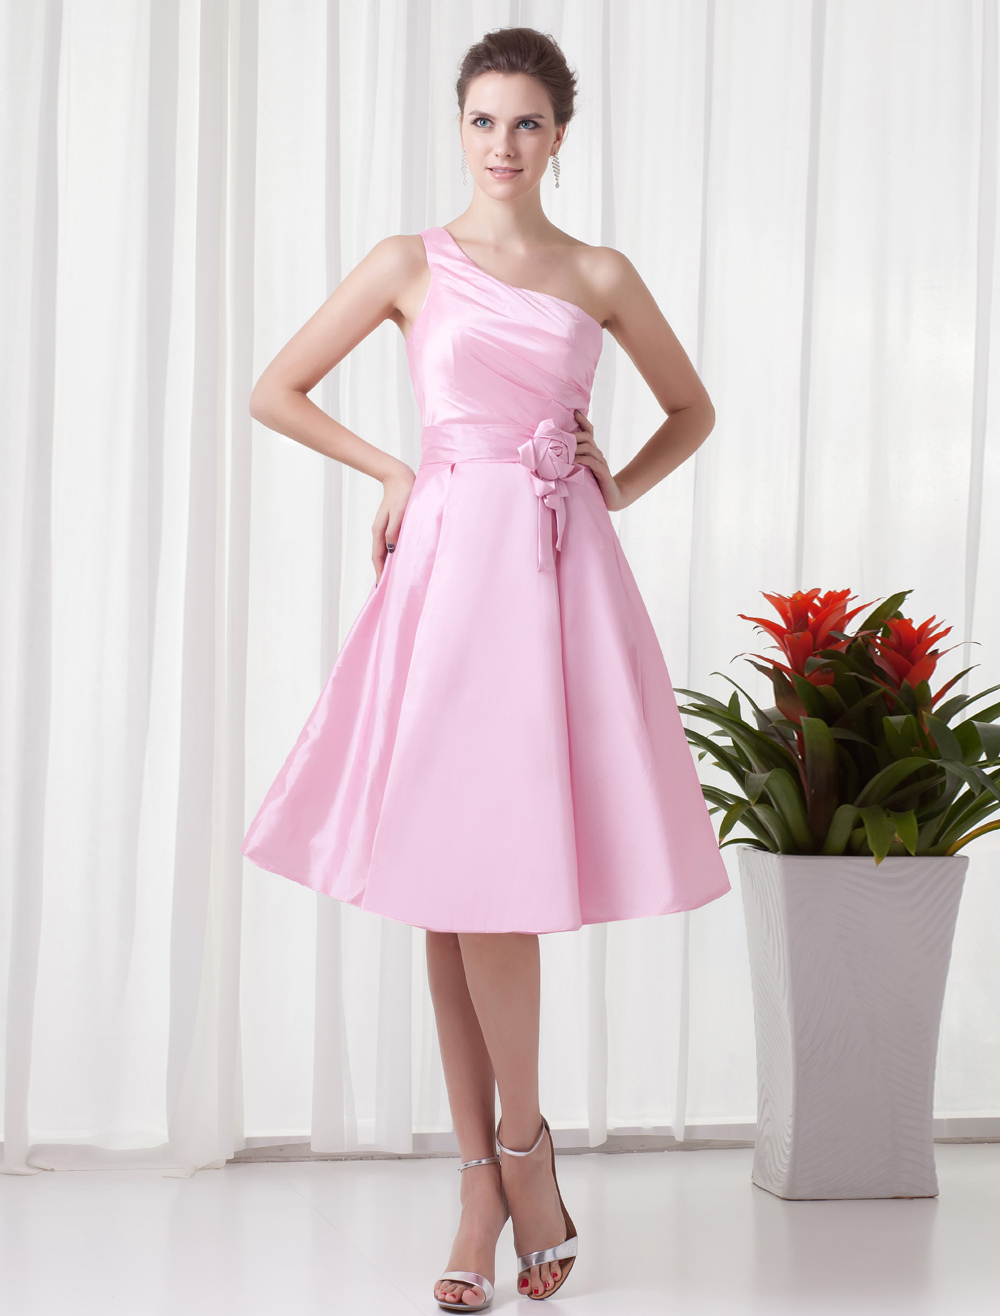 A-line Pink Taffeta Flower One-Shoulder Knee-Length Bridesmaid Dress For Wedding